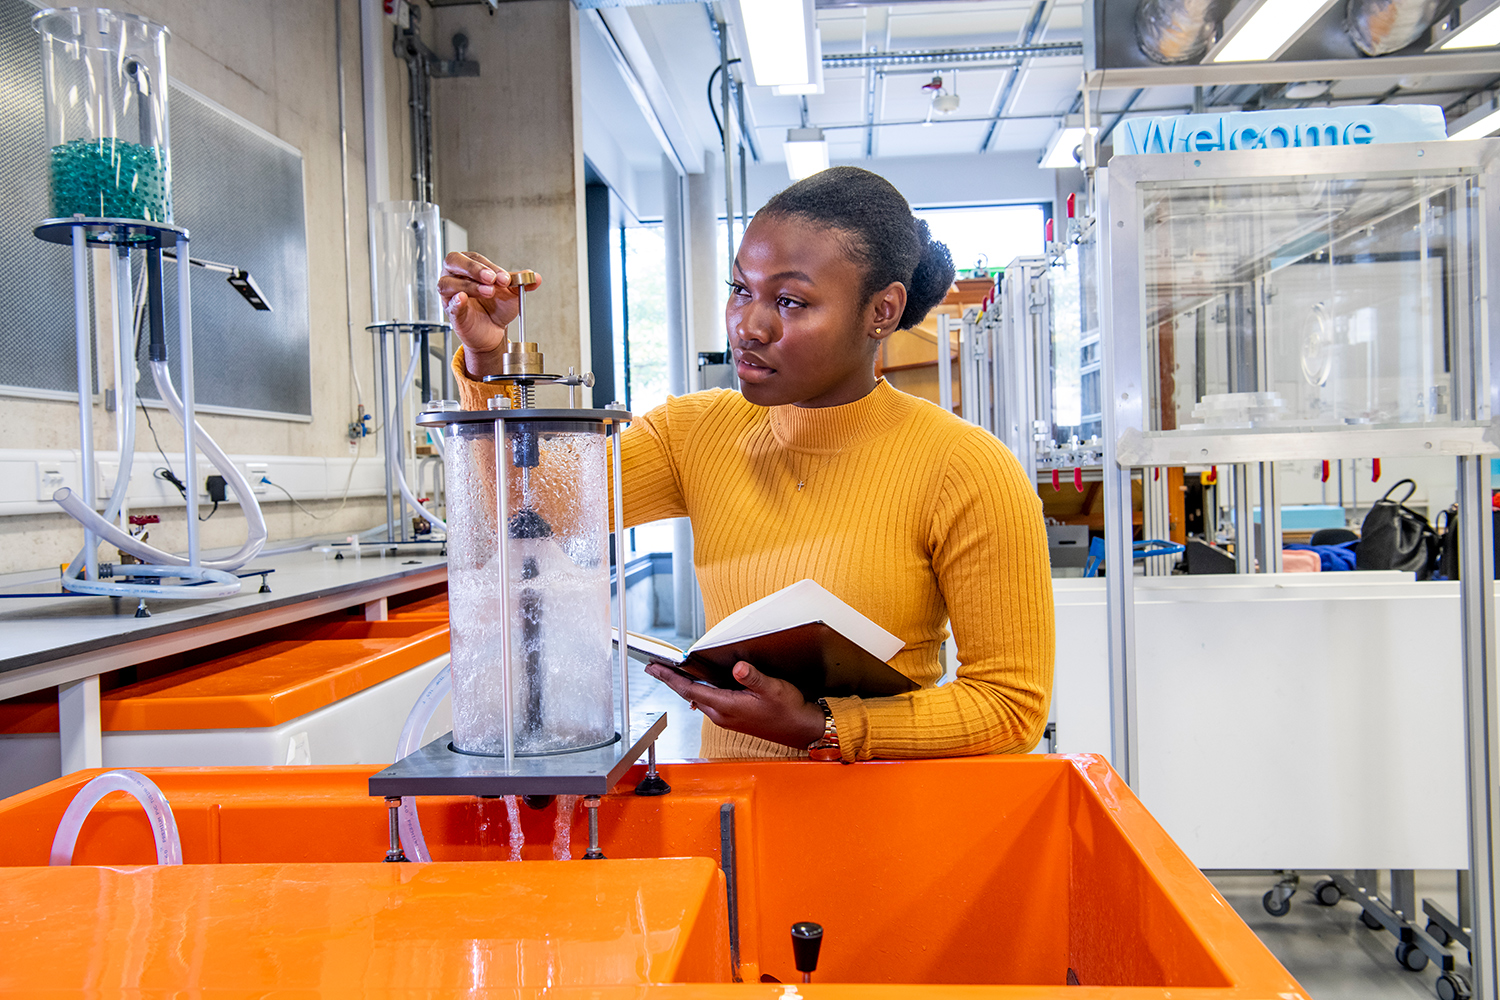 University of Southampton students explore properties of fluids in their civil engineering degree programs. (Image: © University of Southampton)